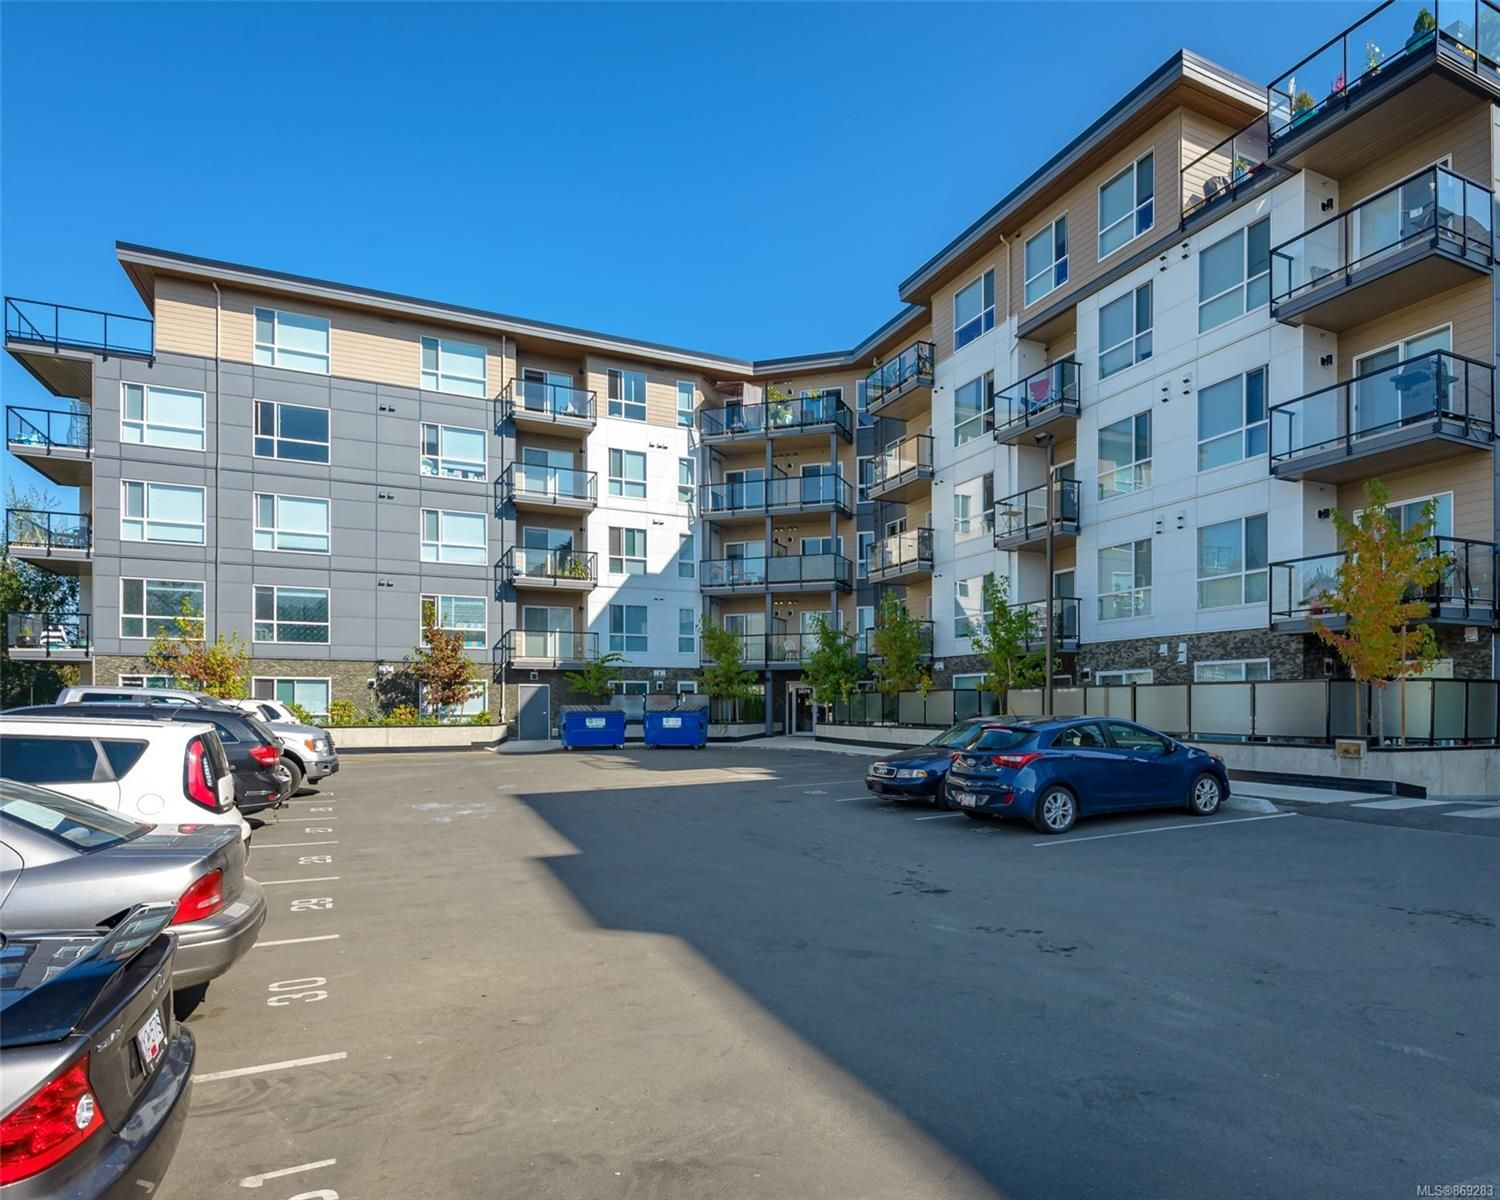 Main Photo: PH3 3070 Kilpatrick Ave in : CV Courtenay City Condo for sale (Comox Valley)  : MLS®# 869283